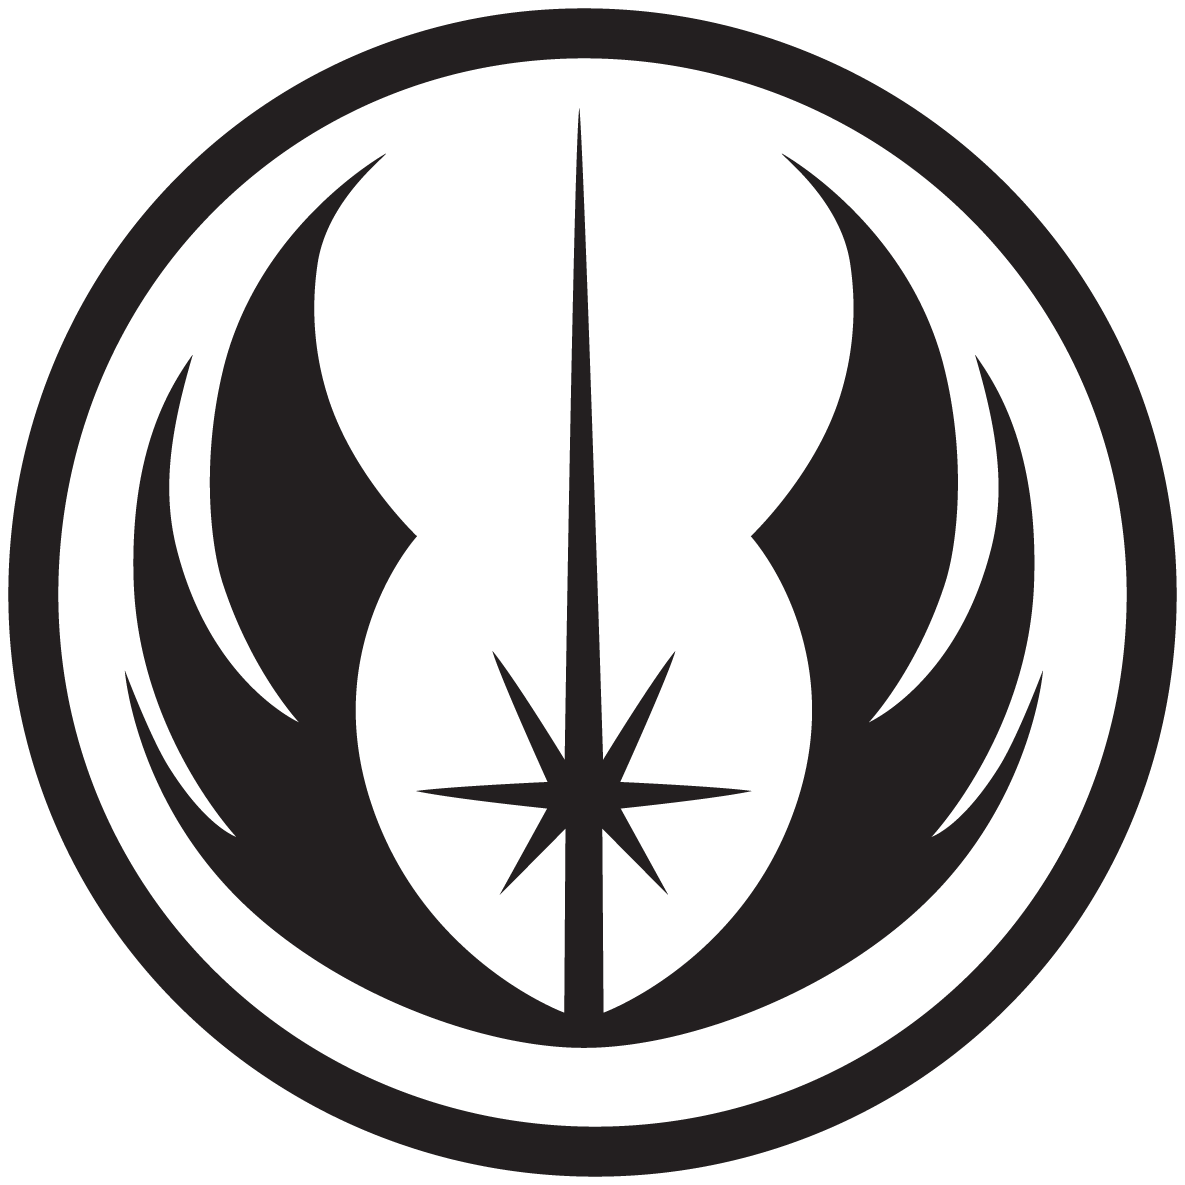 Jedi Order Symbol Cellphone Wallpaper by swmand4 1185x1185